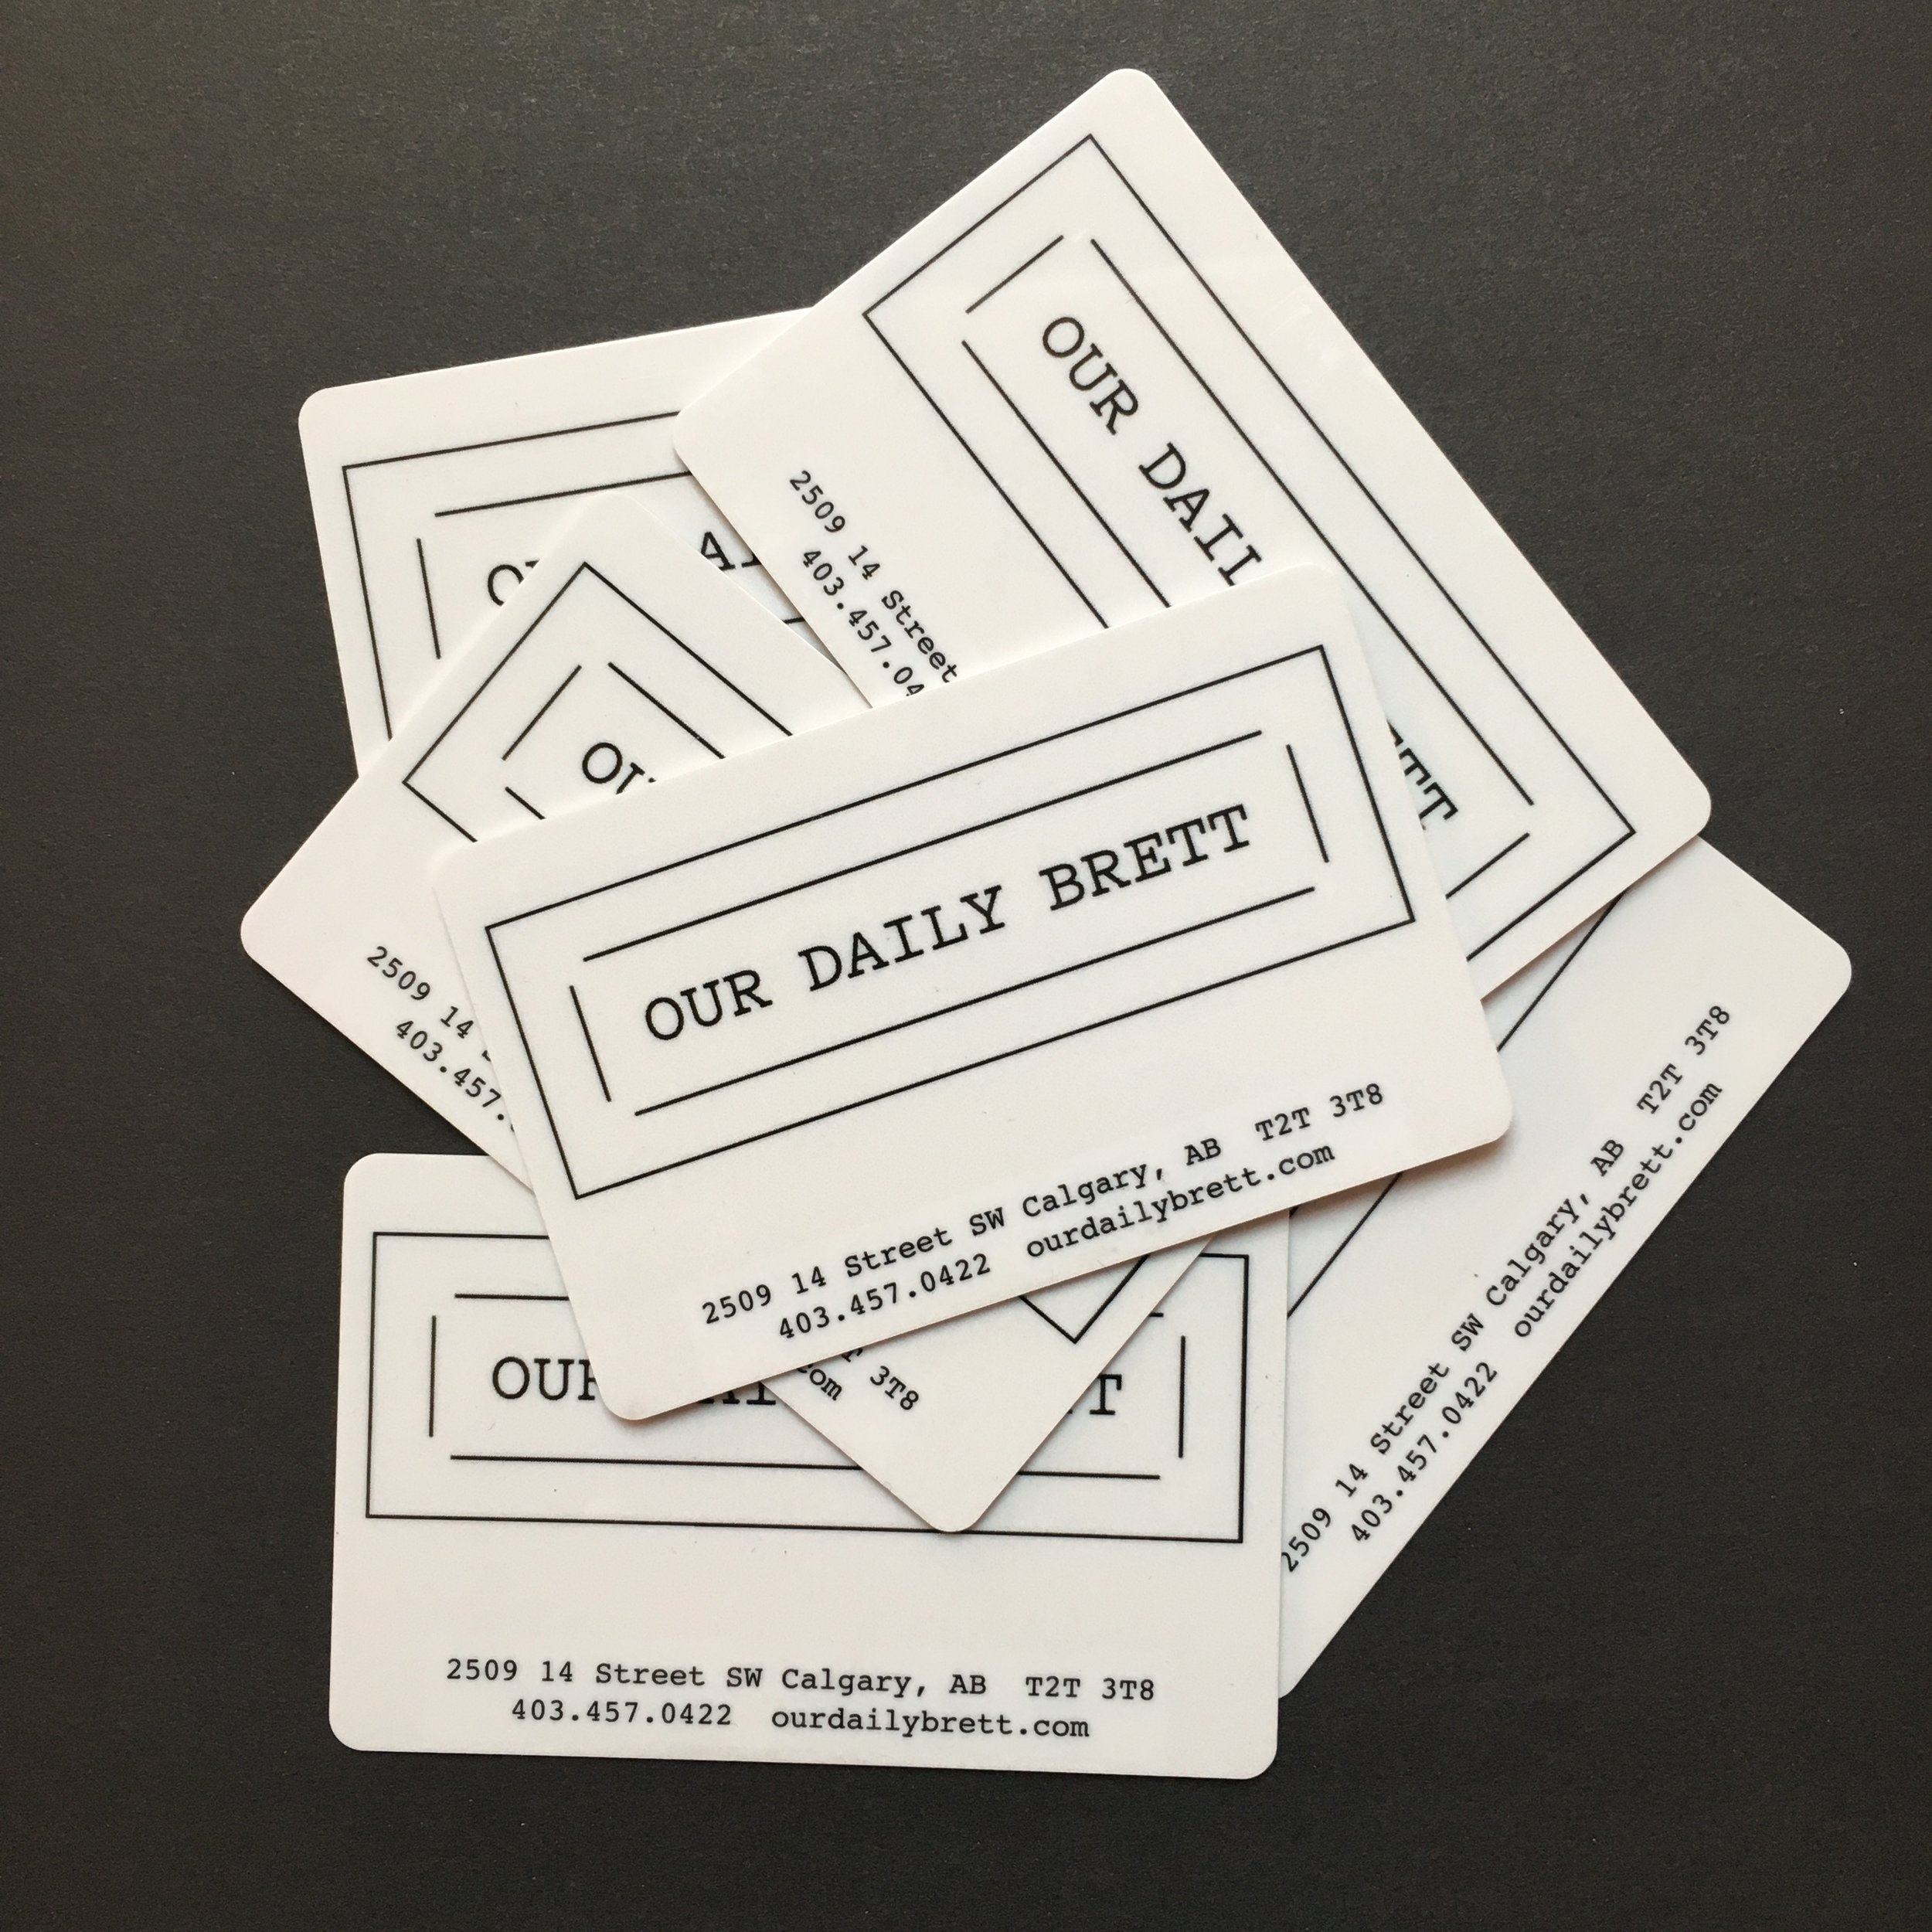 Not new but great for Christmas!  Load one of these bad boys up starting at $25.  Our gift cards are great for those friends and family who don't have time to cook or who are impossible to shop for.